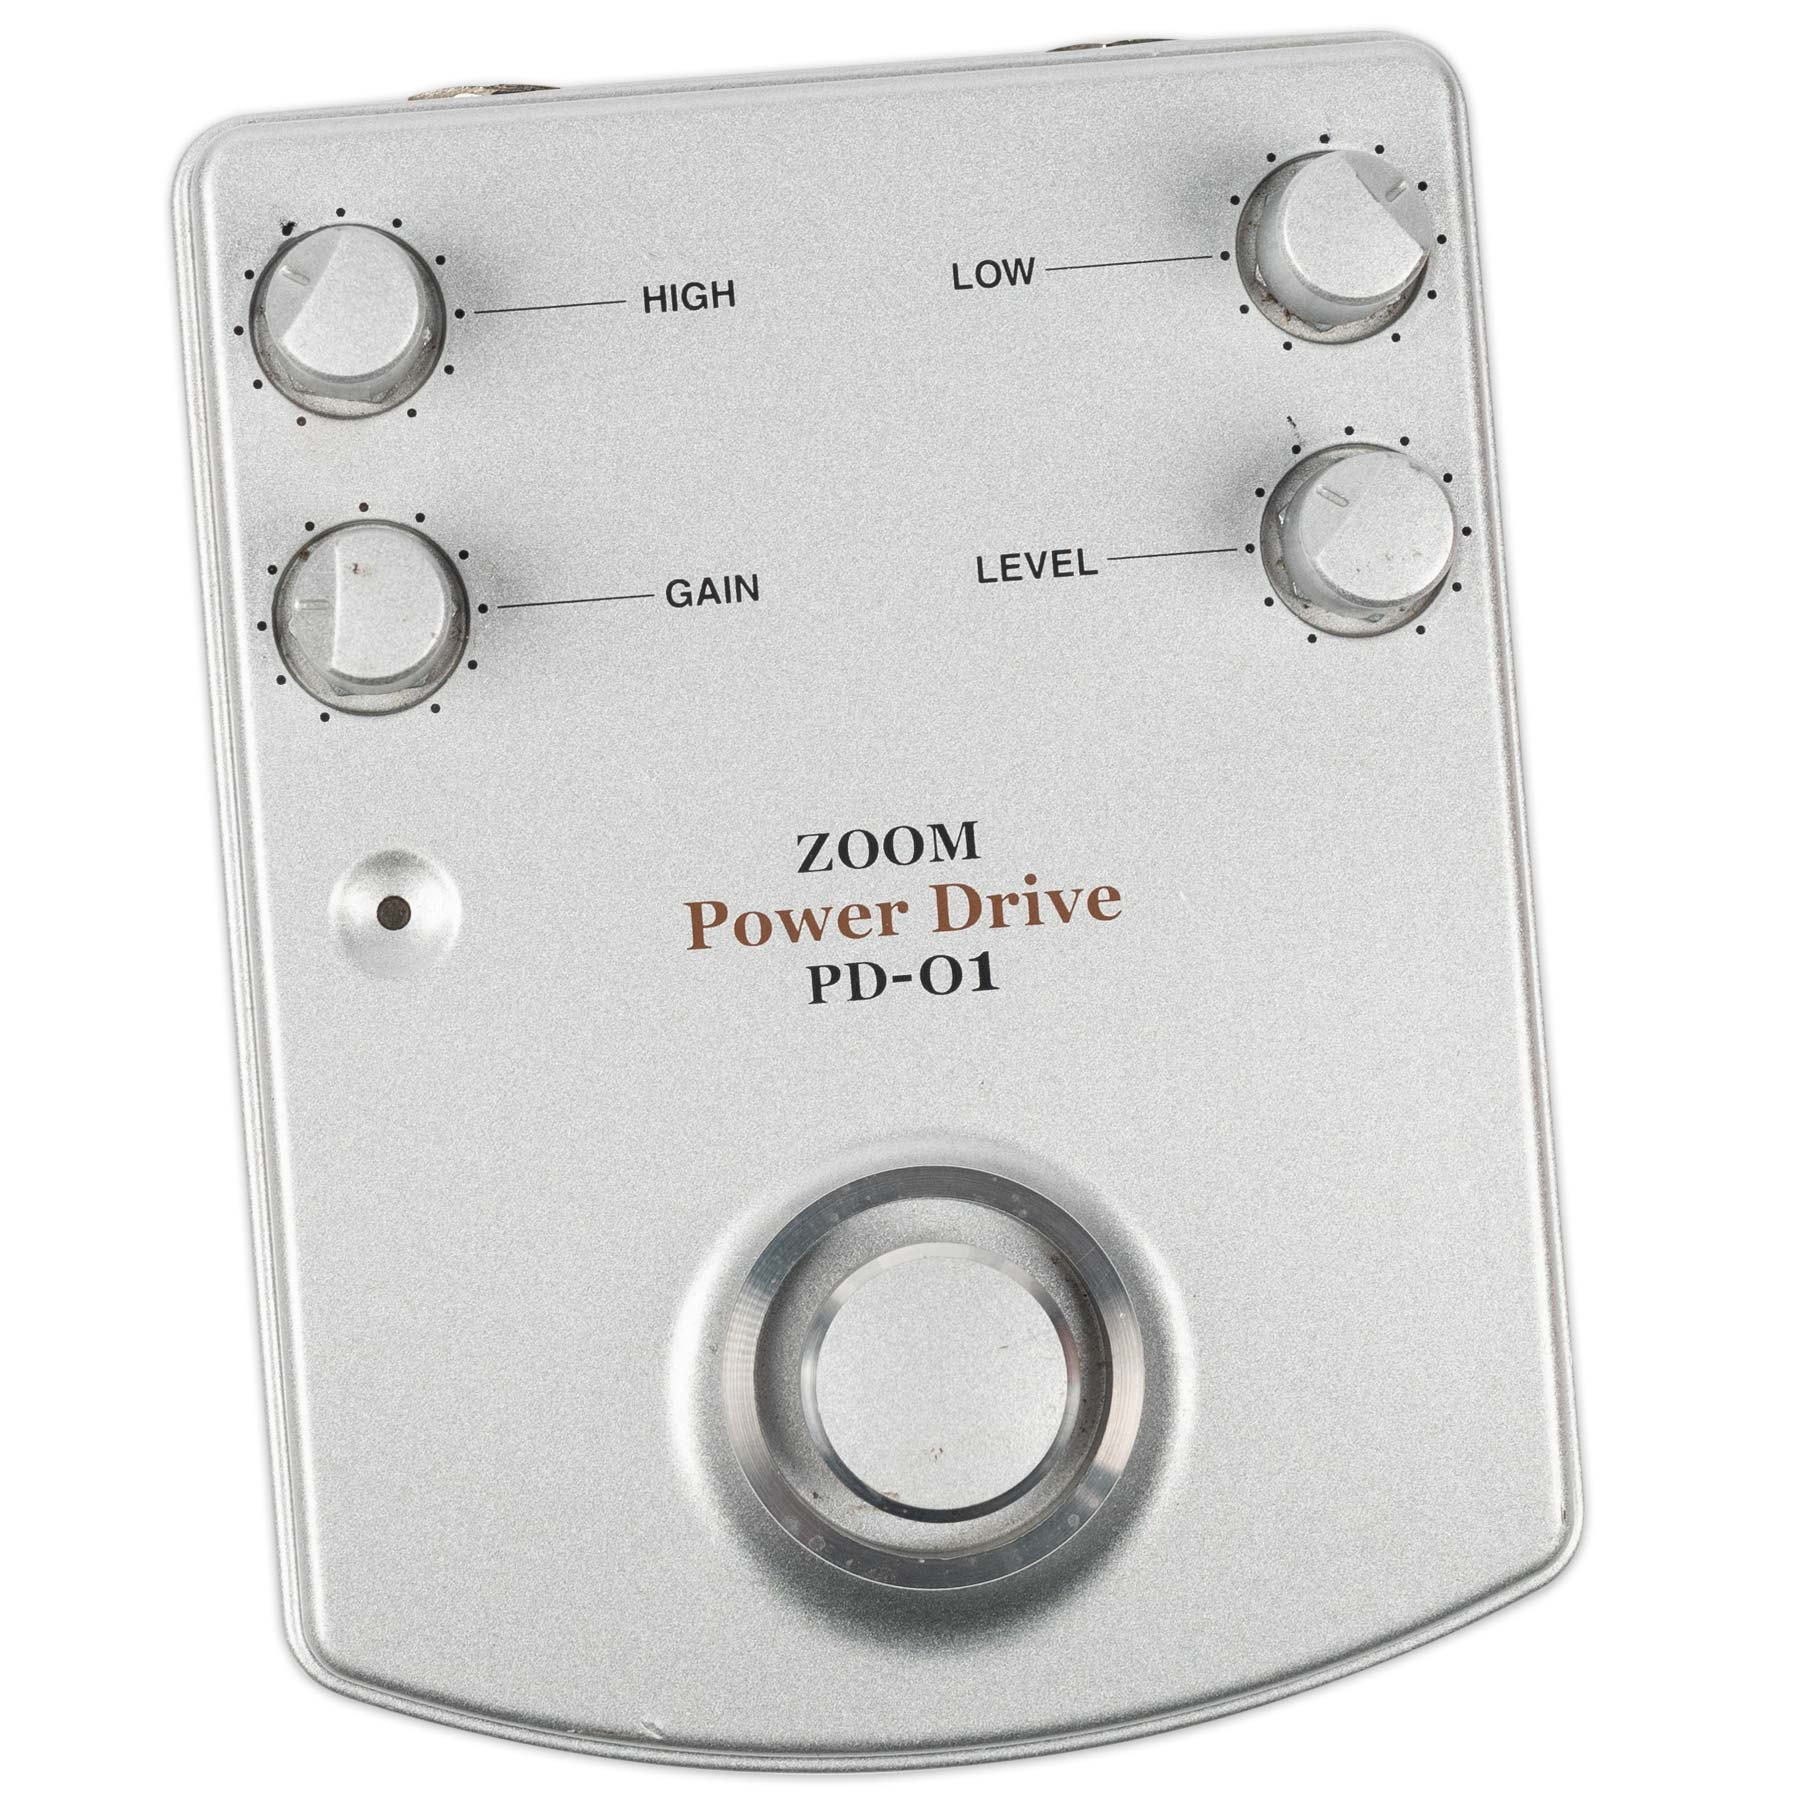 USED ZOOM POWER DRIVE WITH BOX